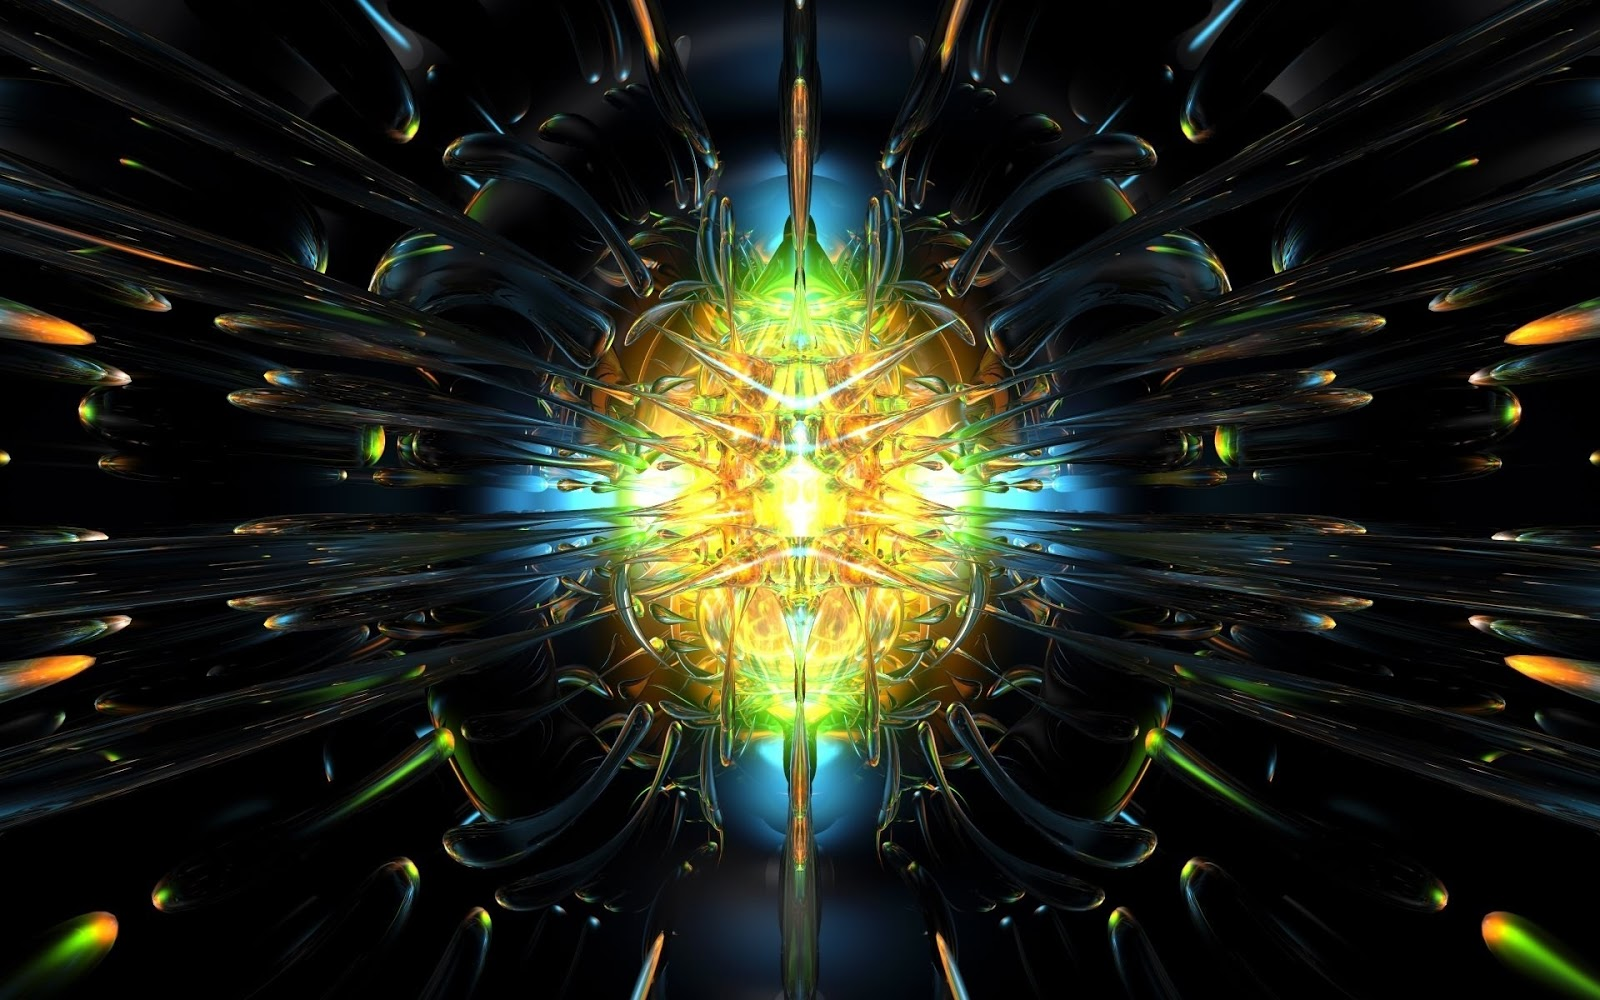 http://4.bp.blogspot.com/-9HihE7ySIso/UPaDoWTL1zI/AAAAAAAAF_A/yA2hydOubPY/s1600/3D+Abstract+hd+wallpaper.jpg